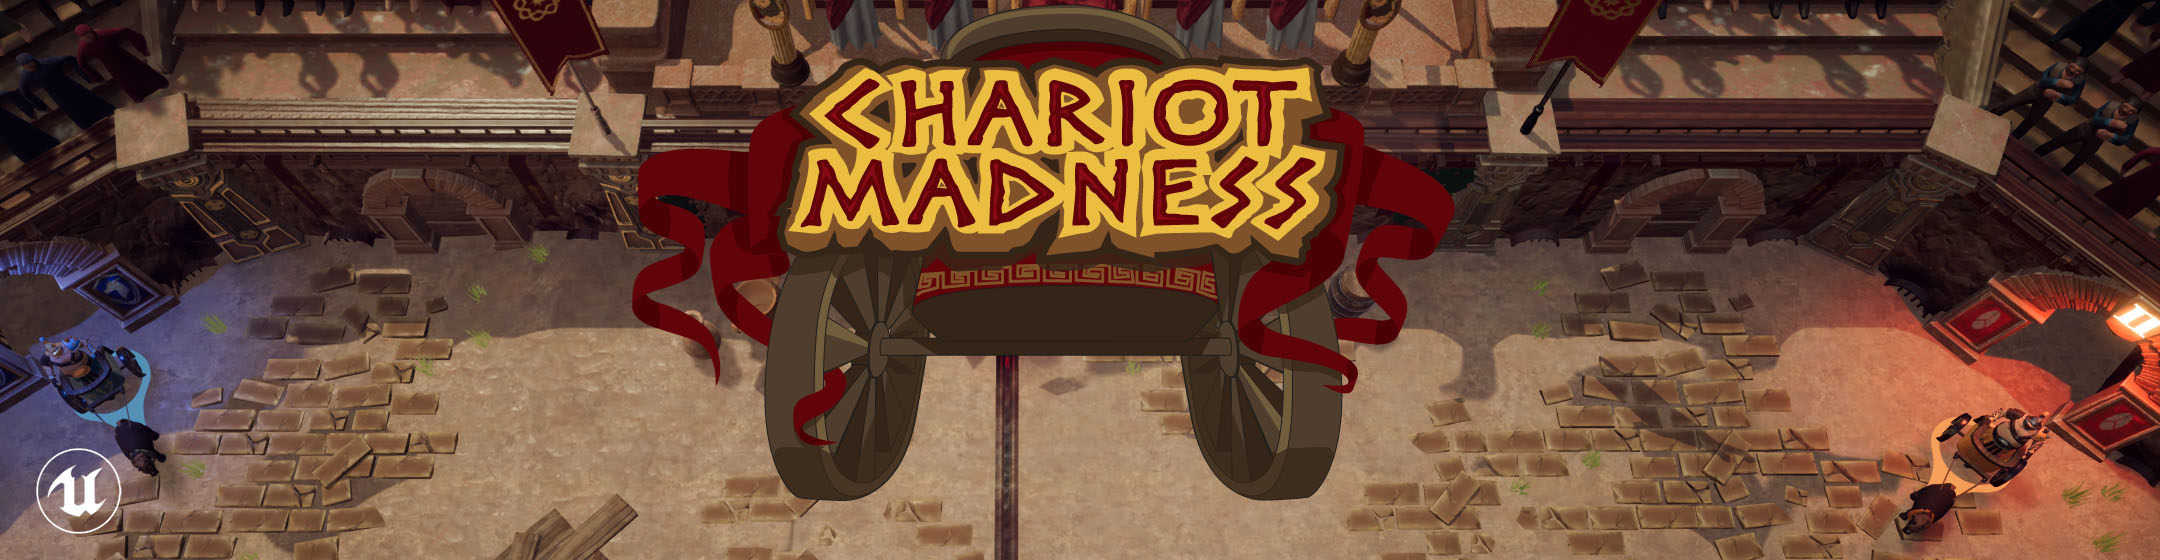 Chariot Madness.